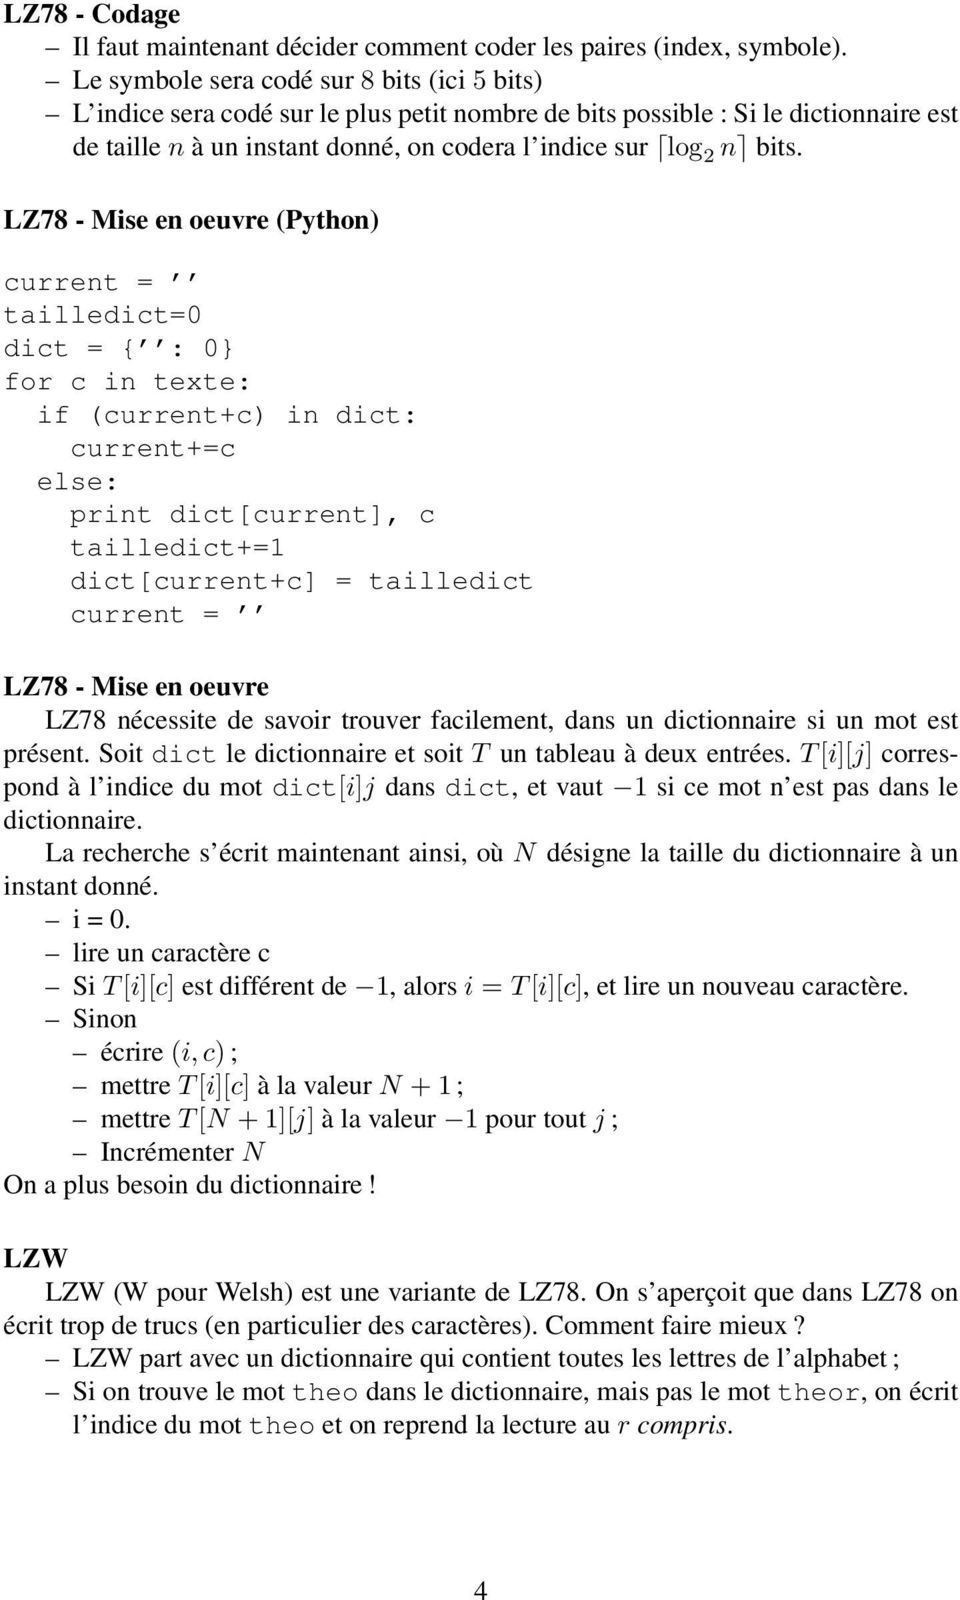 LZ78 - Mise en oeuvre (Python) current = tailledict=0 dict = { : 0} for c in texte: if (current+c) in dict: current+=c else: print dict[current], c tailledict+=1 dict[current+c] = tailledict current